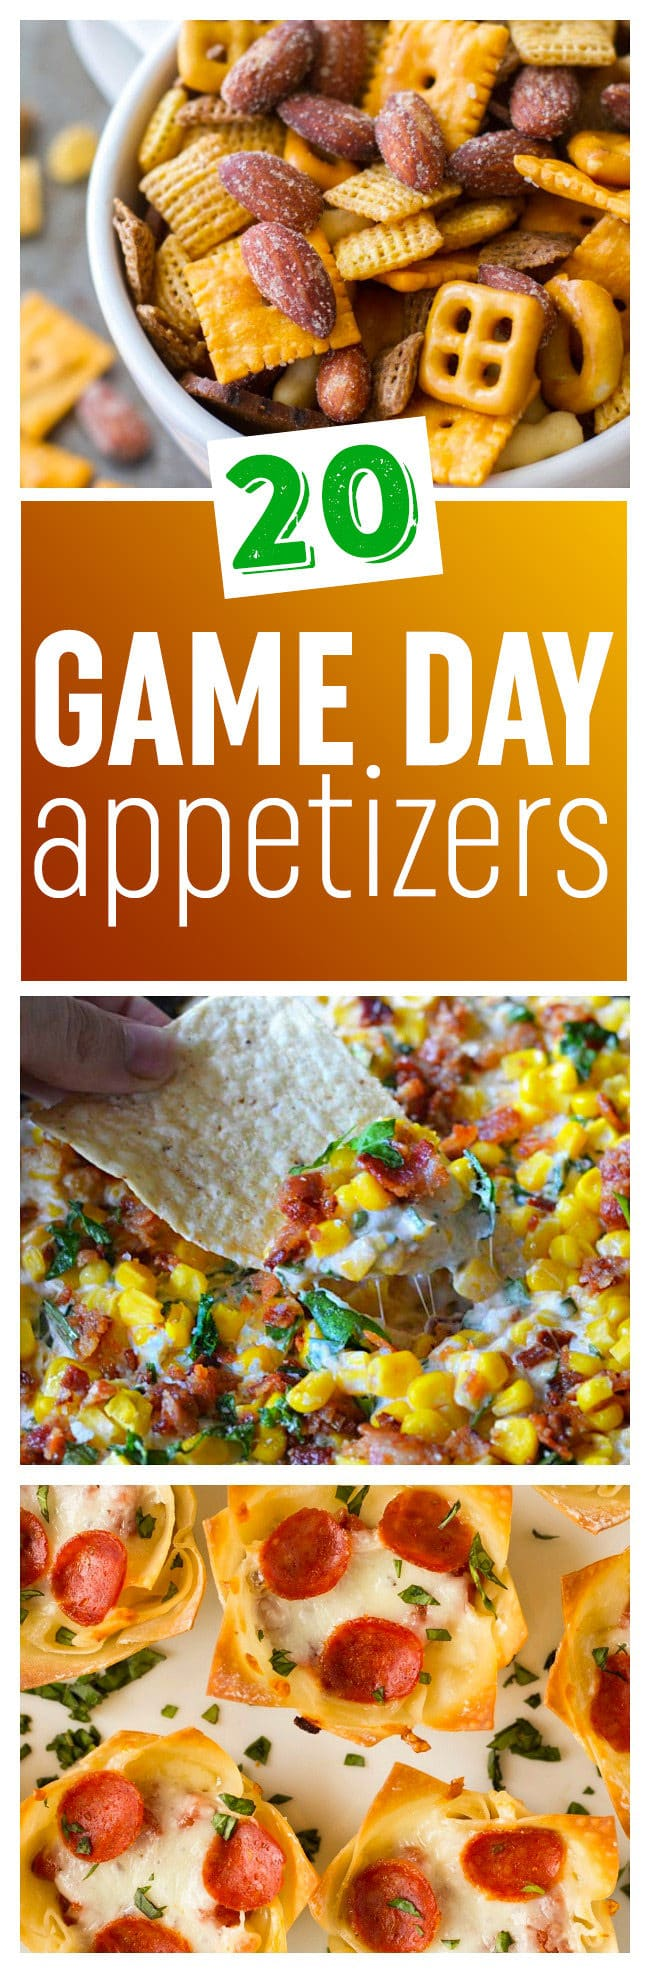 20 Winning Game Day Appetizer Recipes - These easy and delicious game day appetizers will please your whole crew!